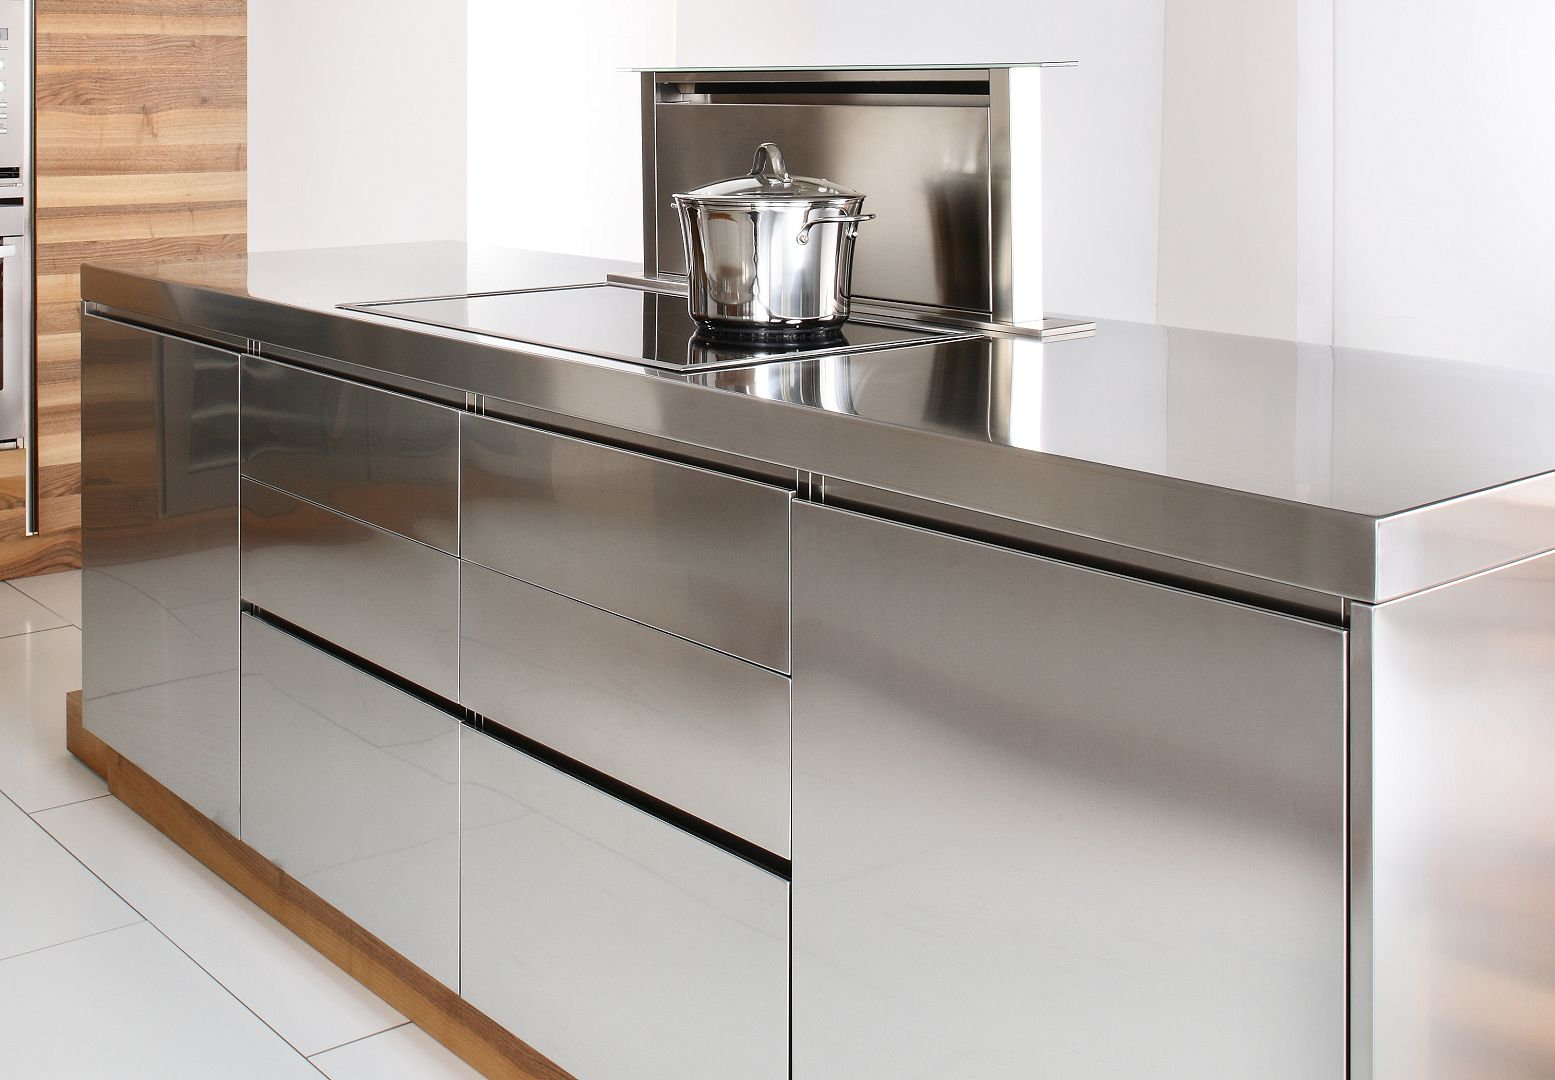 Arca Italian Kitchen - Kitchens Milf Stainless Steel - Open - Handle Detail And Hood